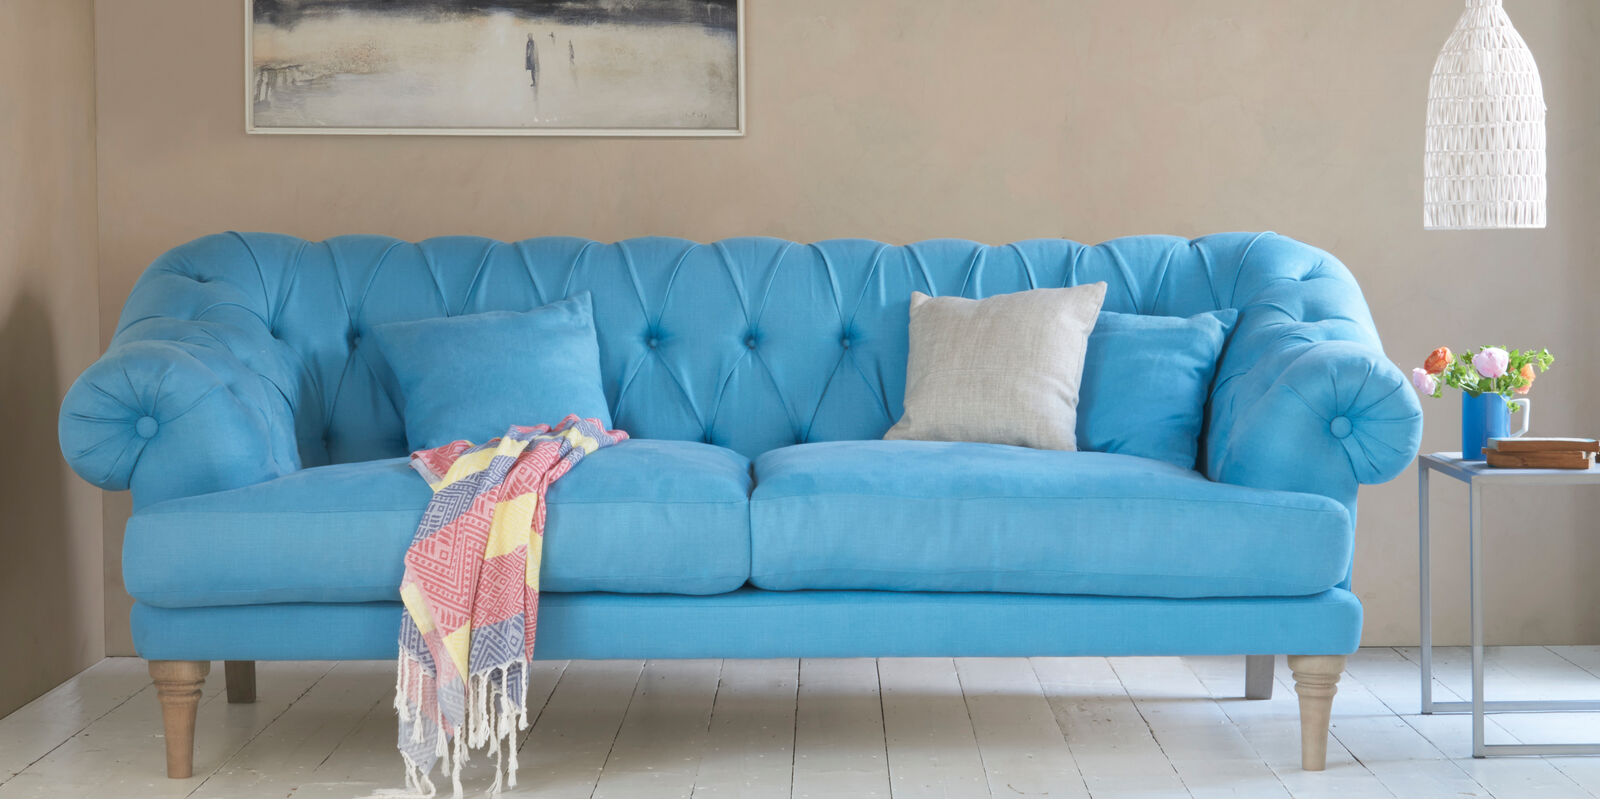 Bagsie high seat sofa with tall legs